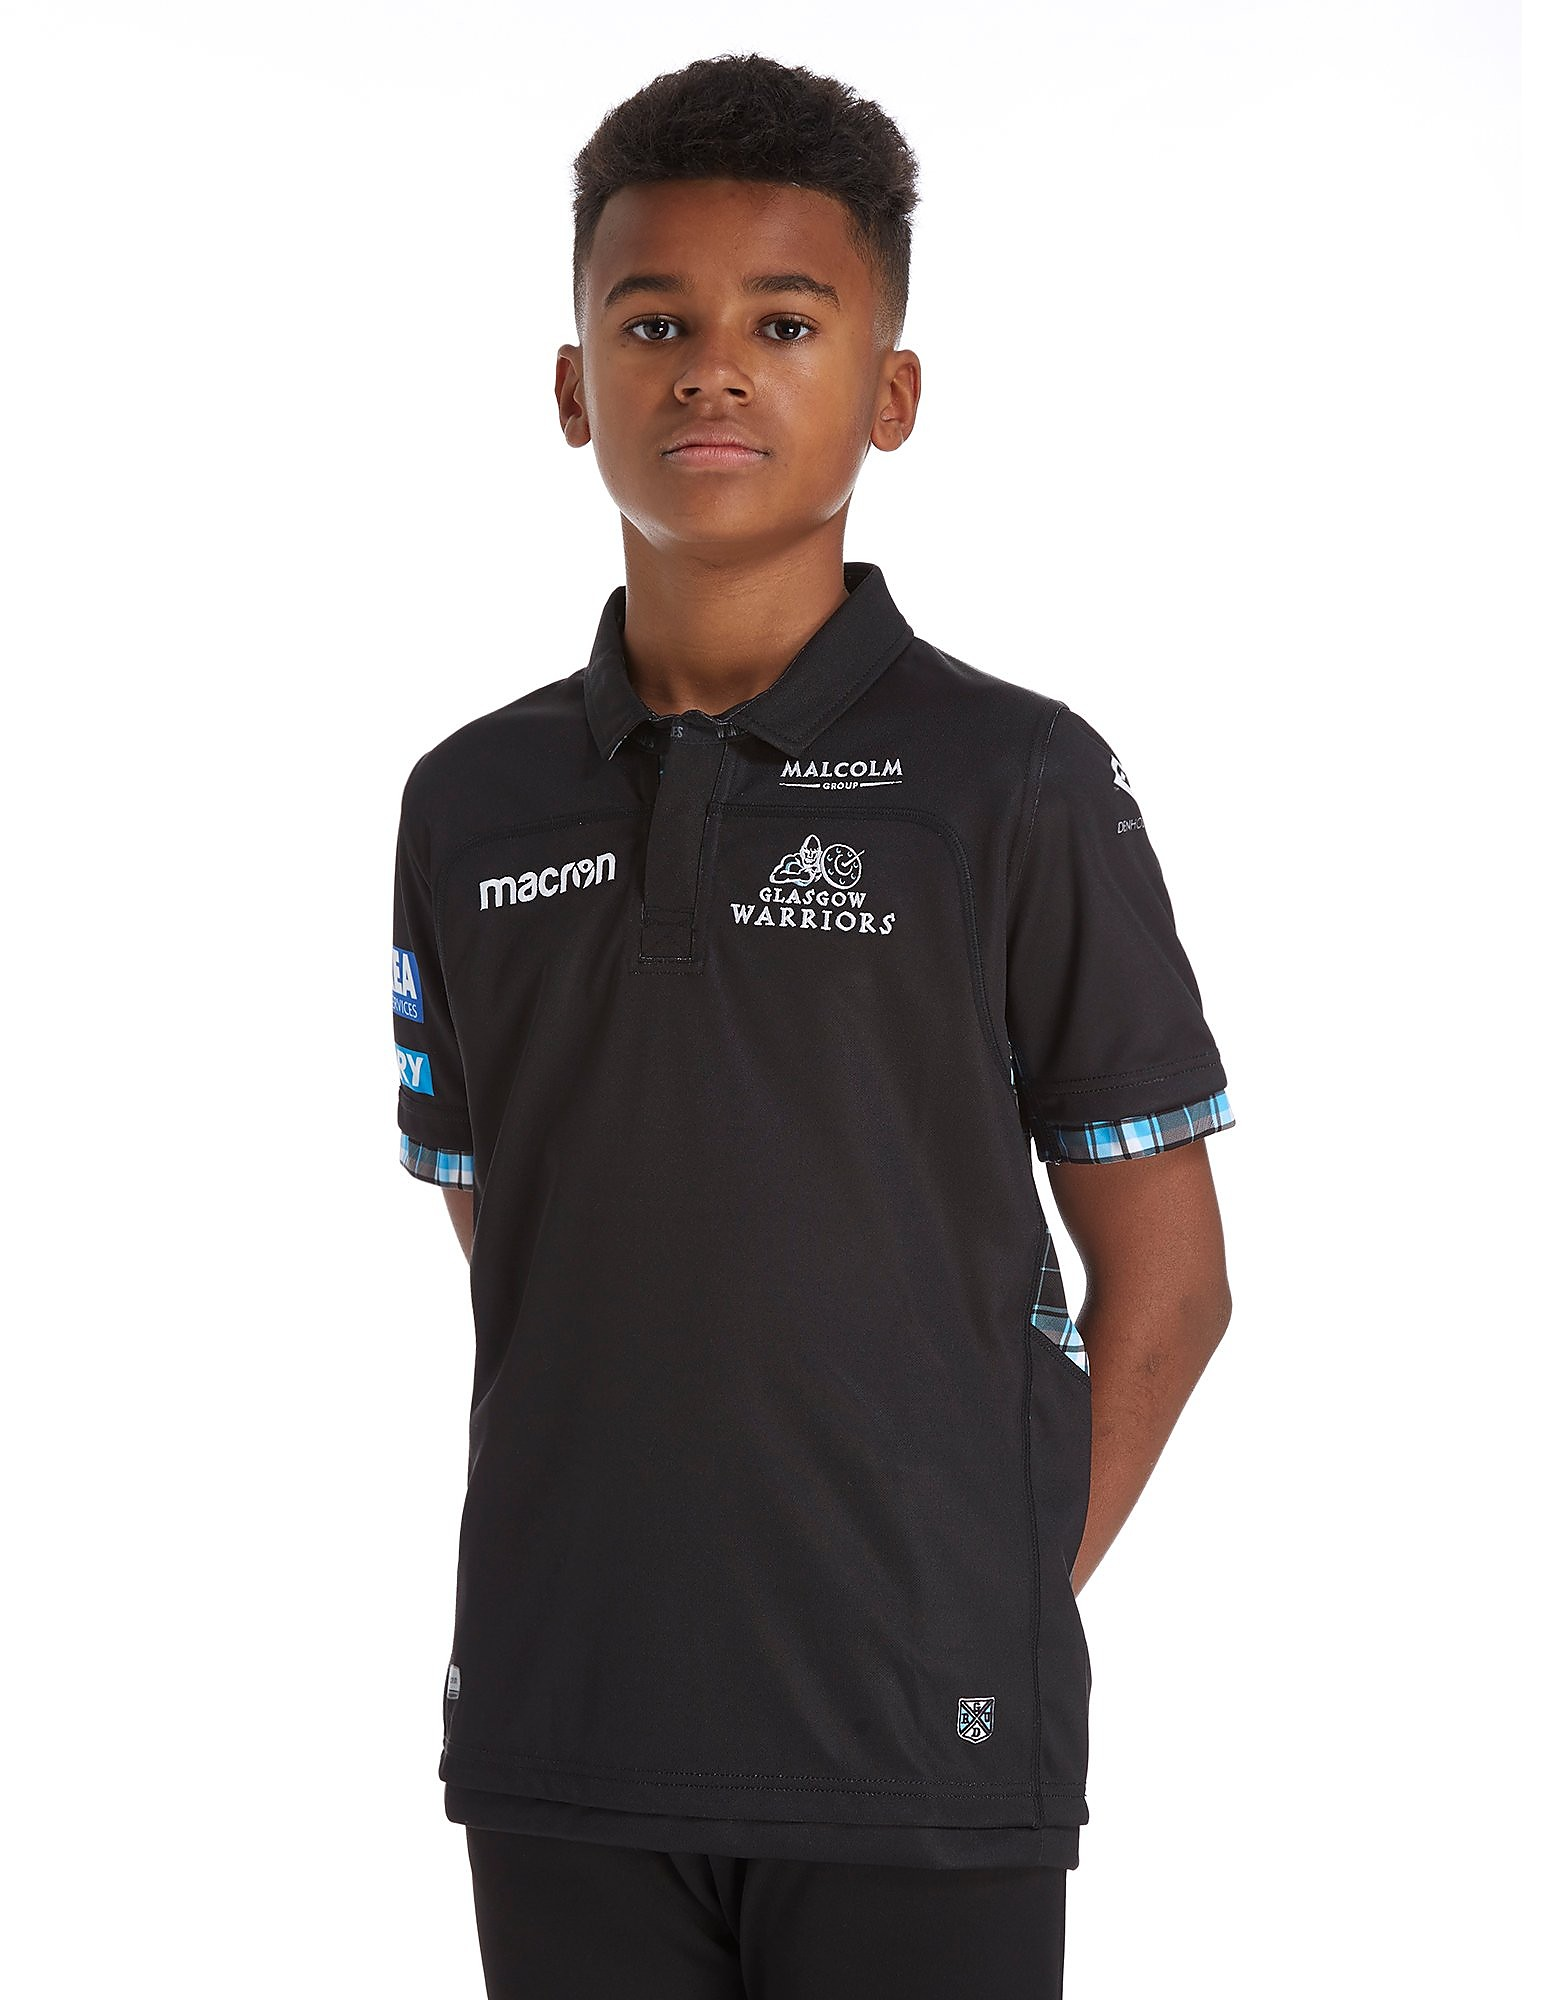 Macron Glasgow Warriors 2017/18 Home Shirt Junior